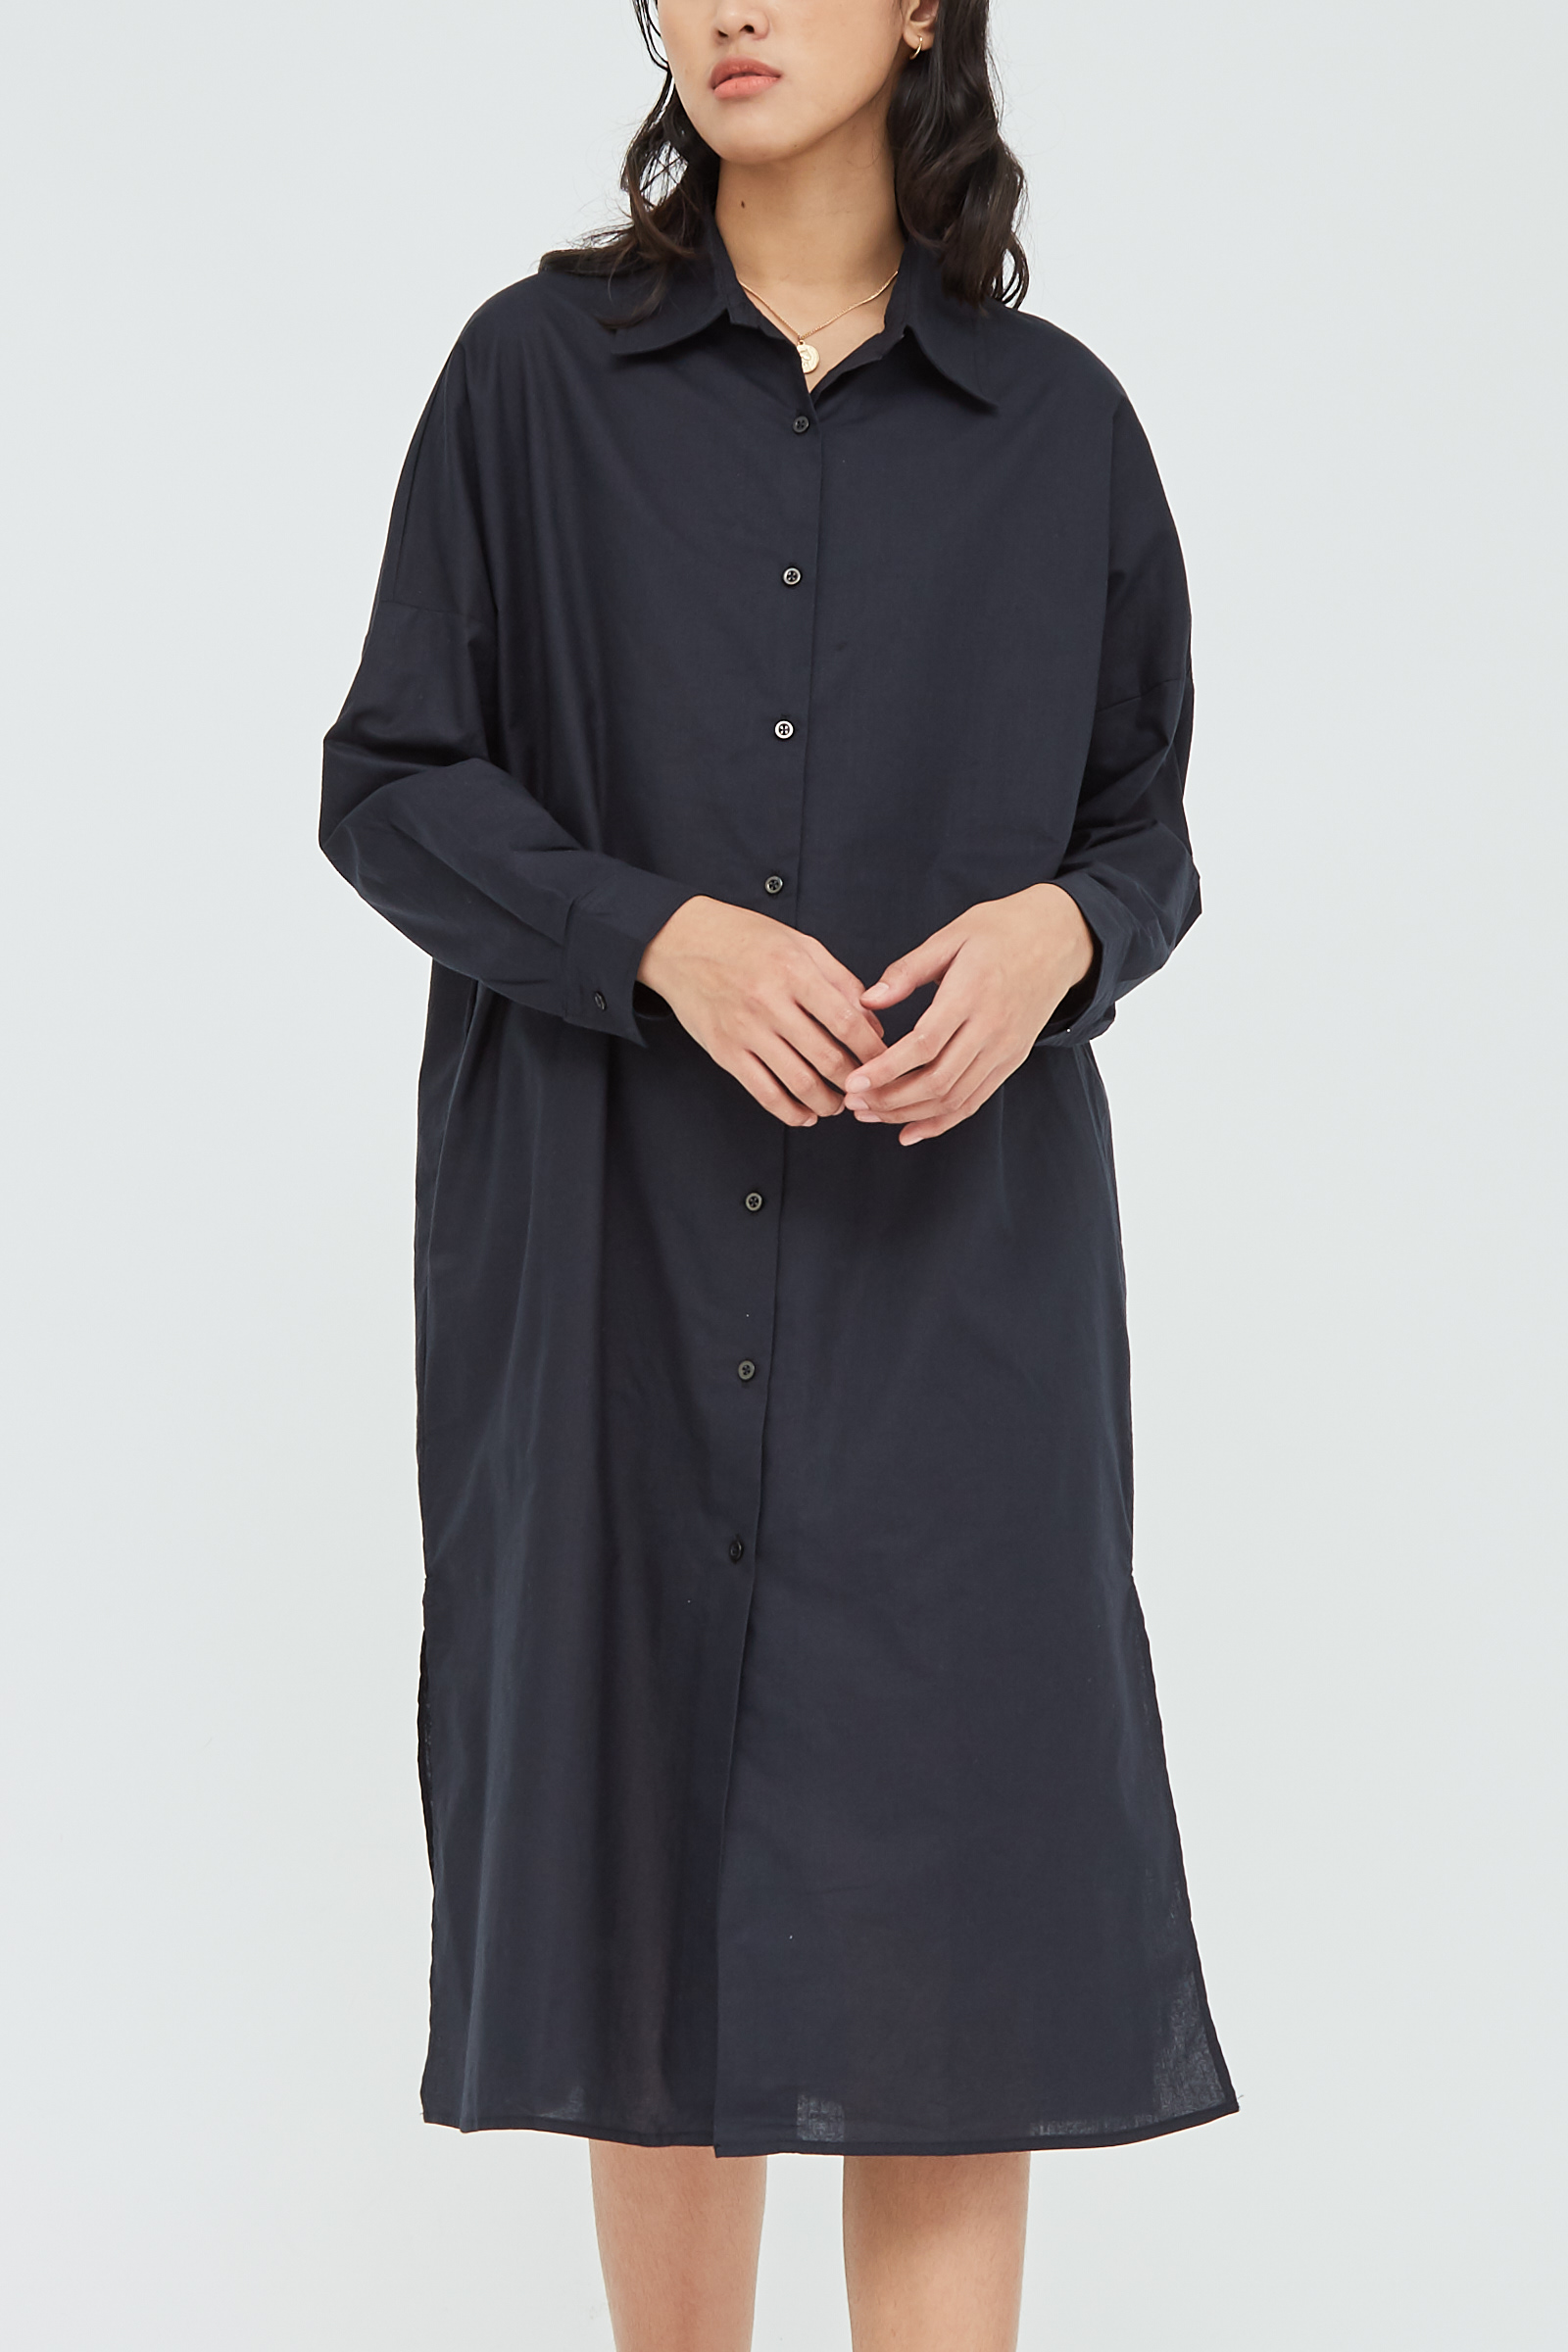 Shopatvelvet Perry Shirt Dress Black